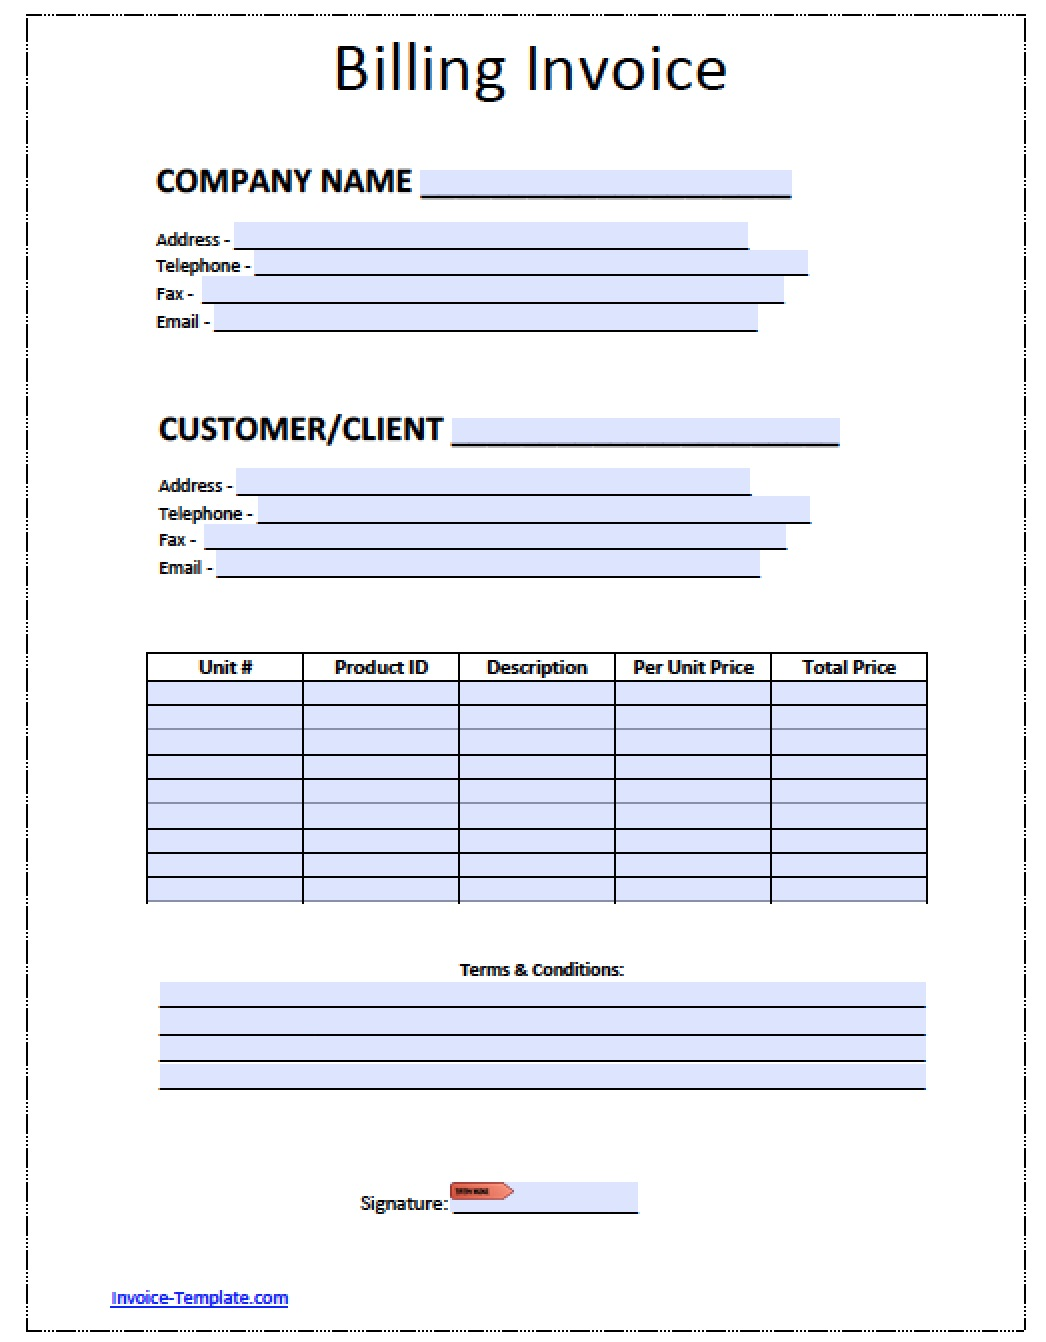 Carsforlessus  Outstanding Billing Invoice Invoices Faq U Cloudflare Support Billing  With Hot Free Billing Invoice Template  Excel  Pdf  Word Doc  Billing With Beautiful Invoice Template Microsoft Excel Also Immigrant Visa Processing Fee Invoice In Addition Invoice Template For Openoffice And Invoice Software Free Download Full Version As Well As Free Invoice App For Iphone Additionally Invoice Enclosed Envelopes From Happytomco With Carsforlessus  Hot Billing Invoice Invoices Faq U Cloudflare Support Billing  With Beautiful Free Billing Invoice Template  Excel  Pdf  Word Doc  Billing And Outstanding Invoice Template Microsoft Excel Also Immigrant Visa Processing Fee Invoice In Addition Invoice Template For Openoffice From Happytomco